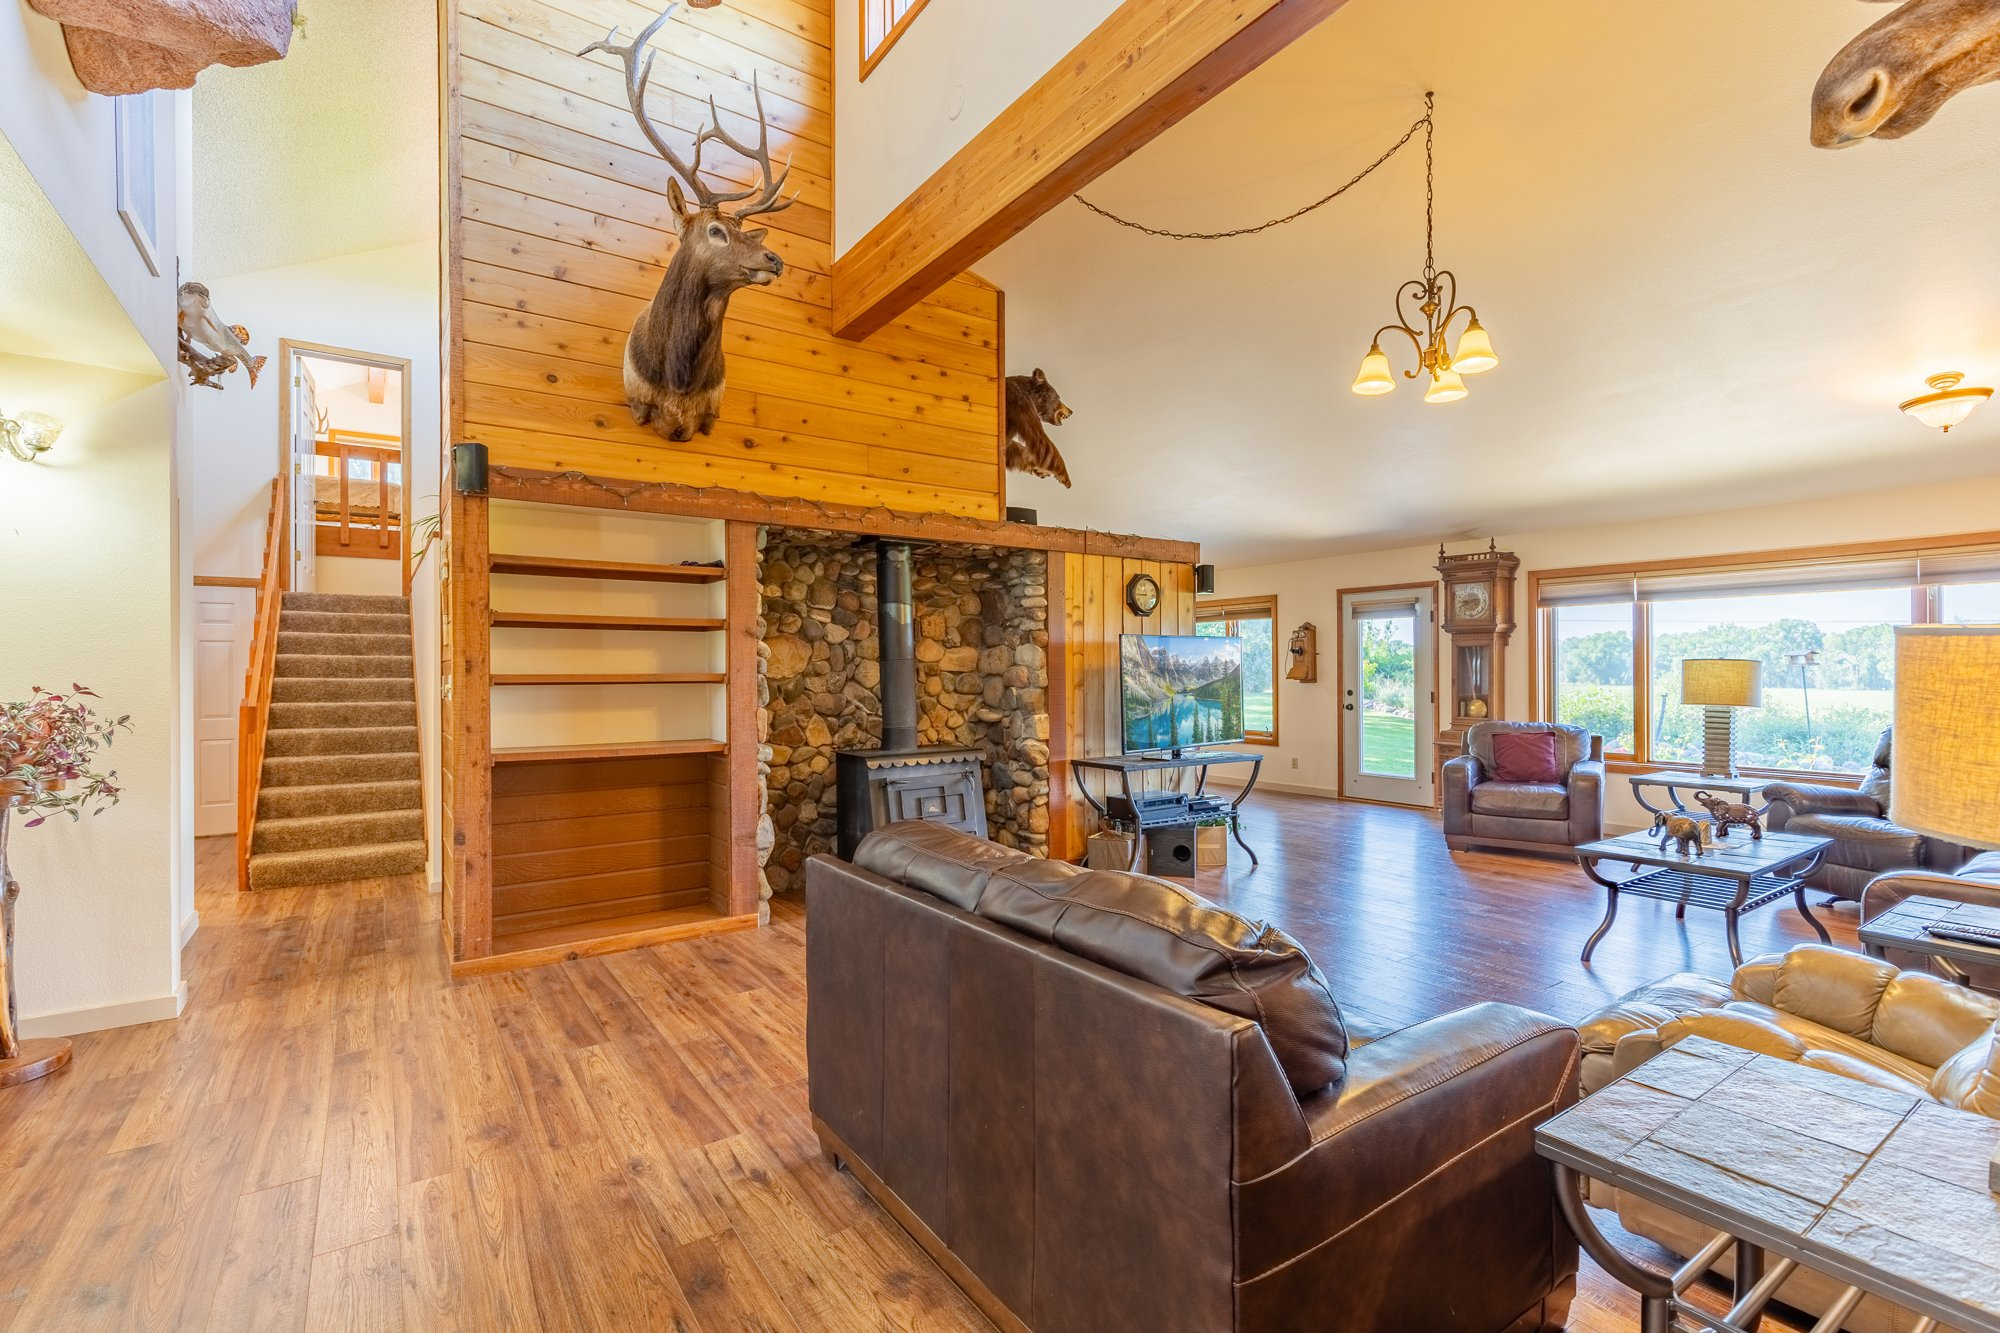 Living Room Built-Ins - 17777 6650 Rd Montrose, CO 81403 - Atha Team Country Real Estate